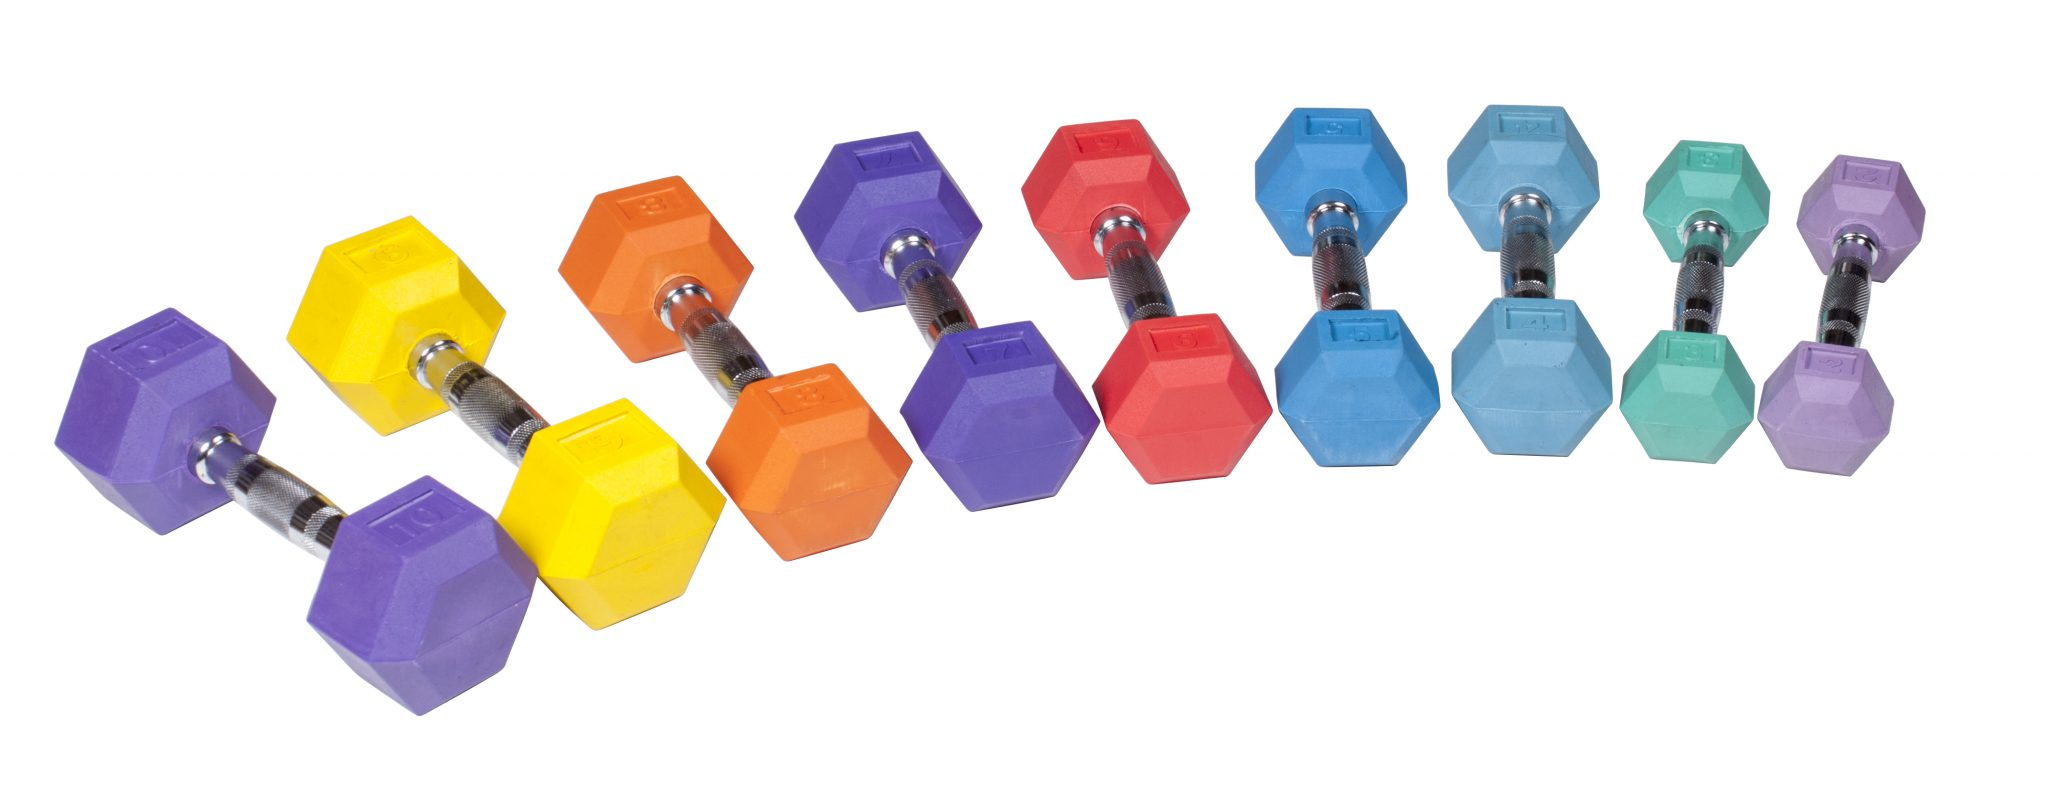 Colored Rubber Hex Dumbbells 2 To 10 Lb York Barbell